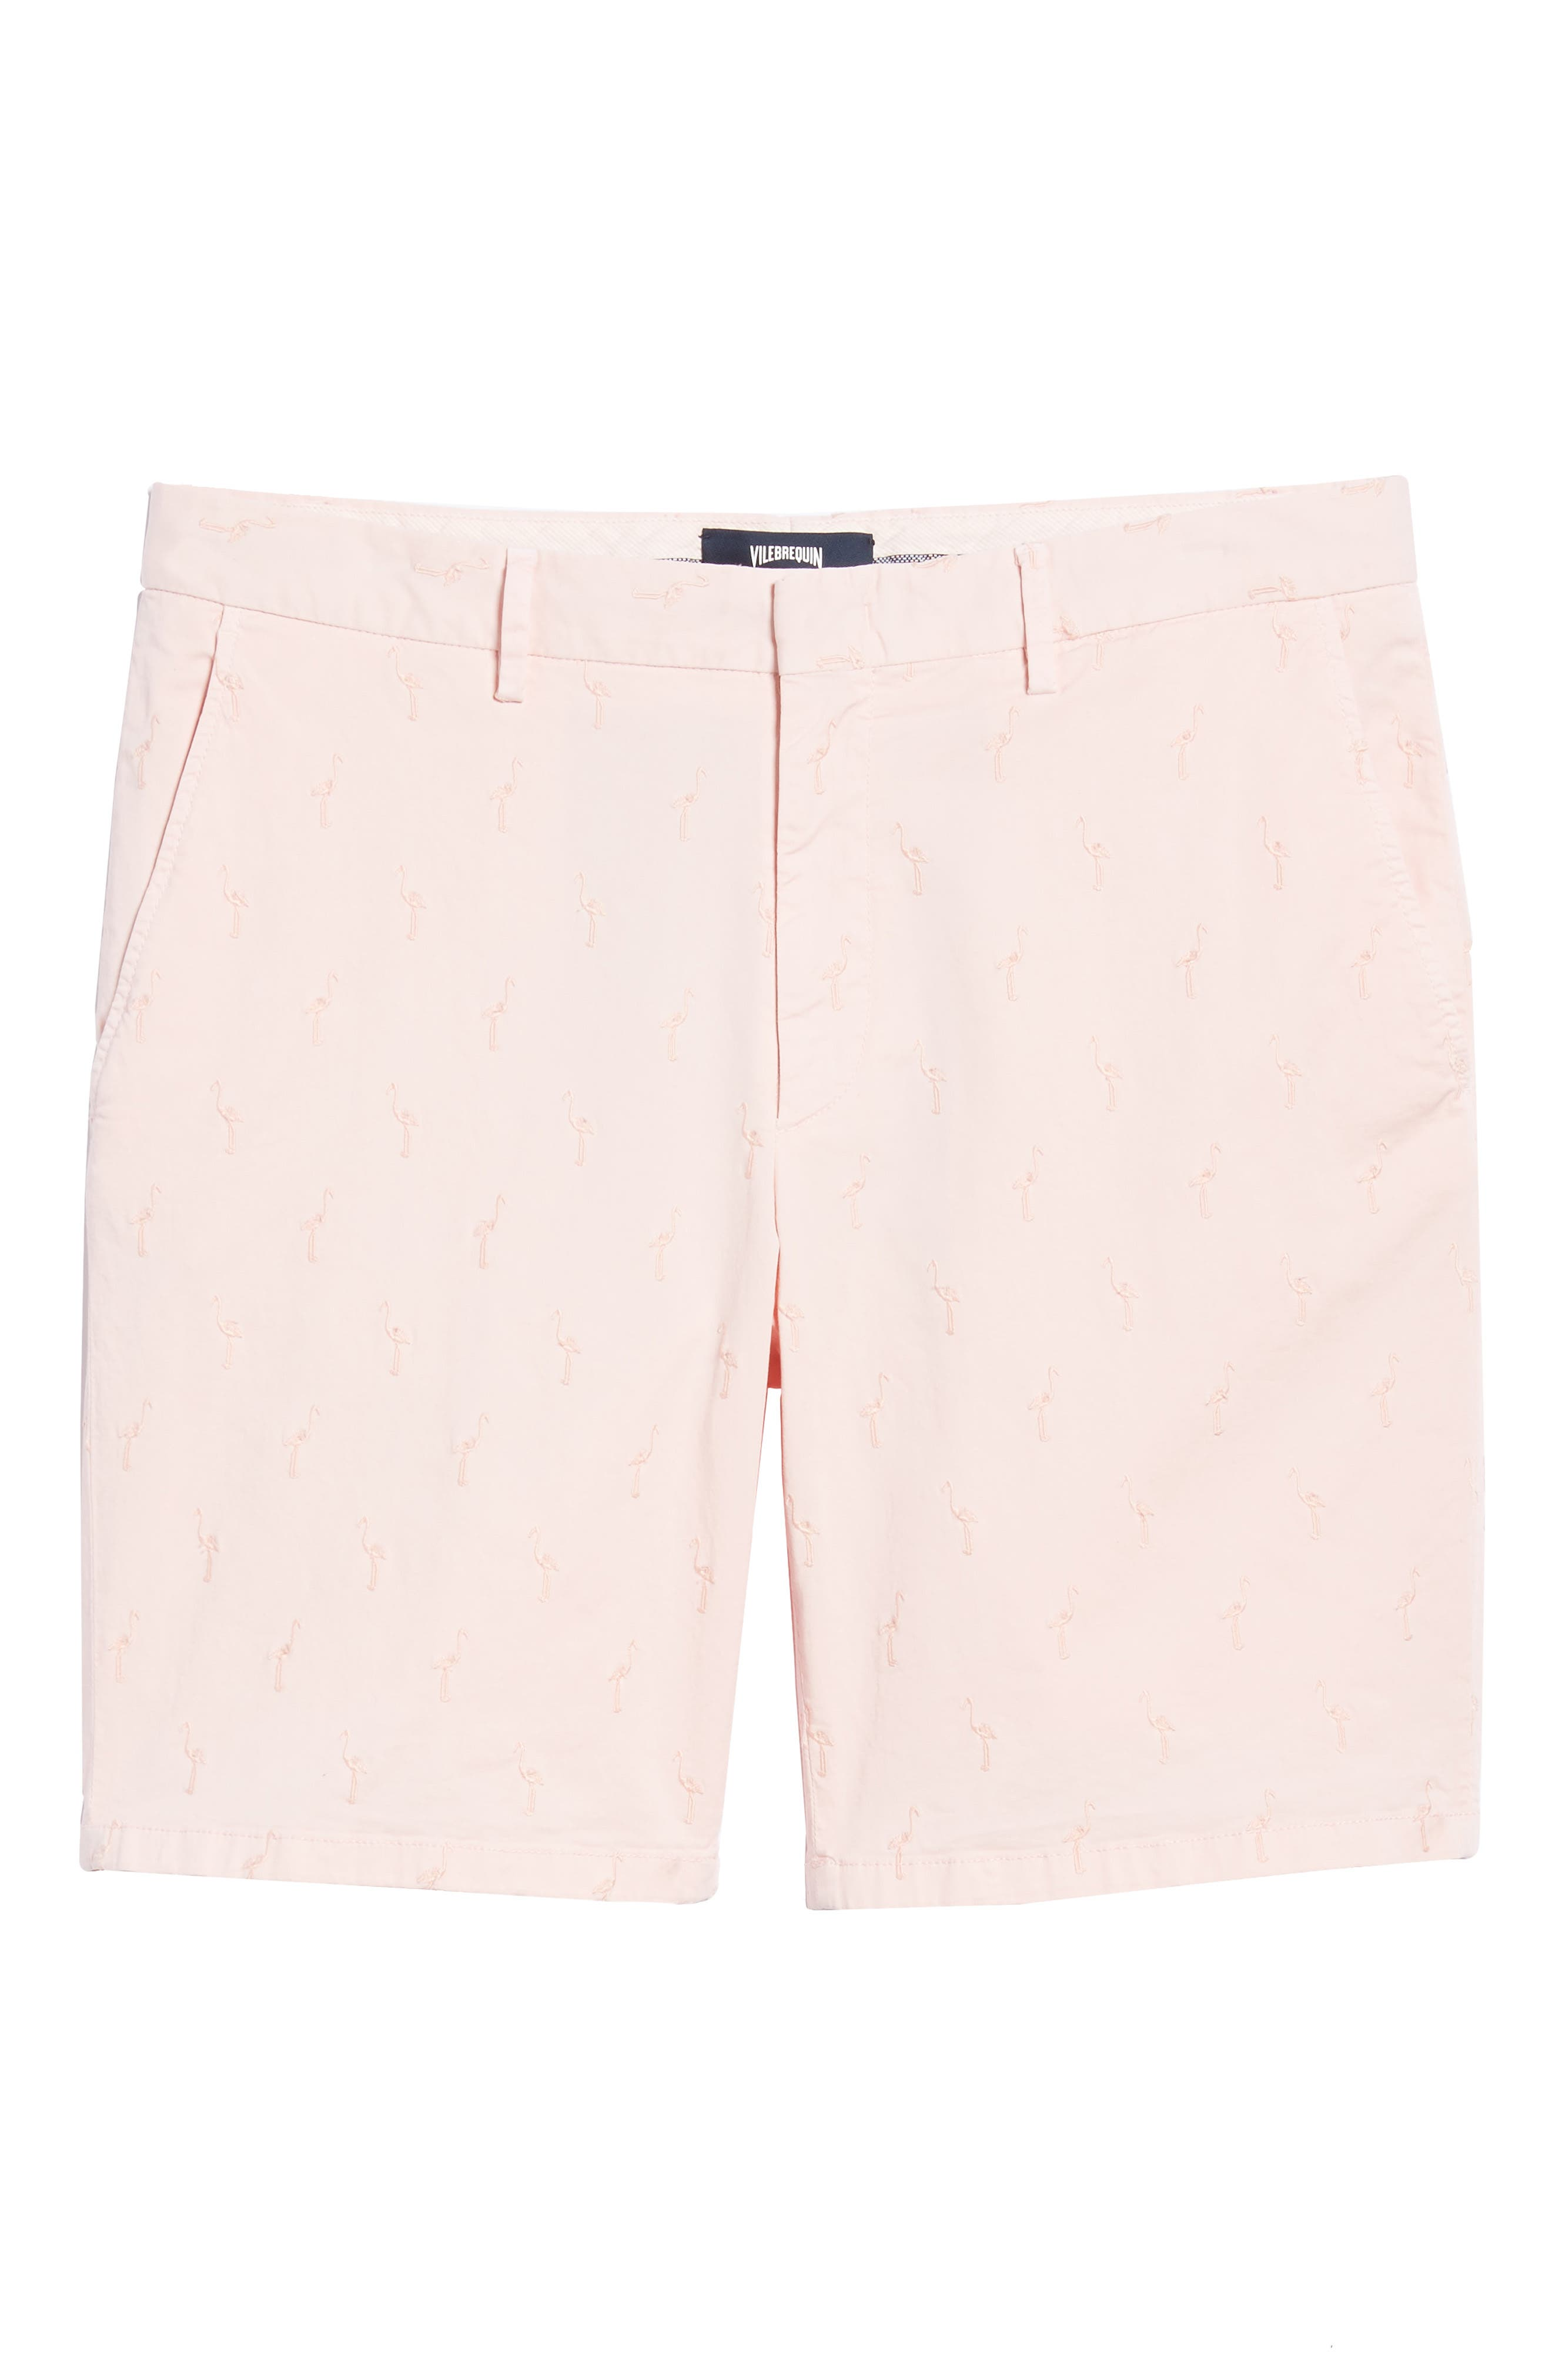 Embroidered Twill Shorts,                             Alternate thumbnail 6, color,                             Pink Sand